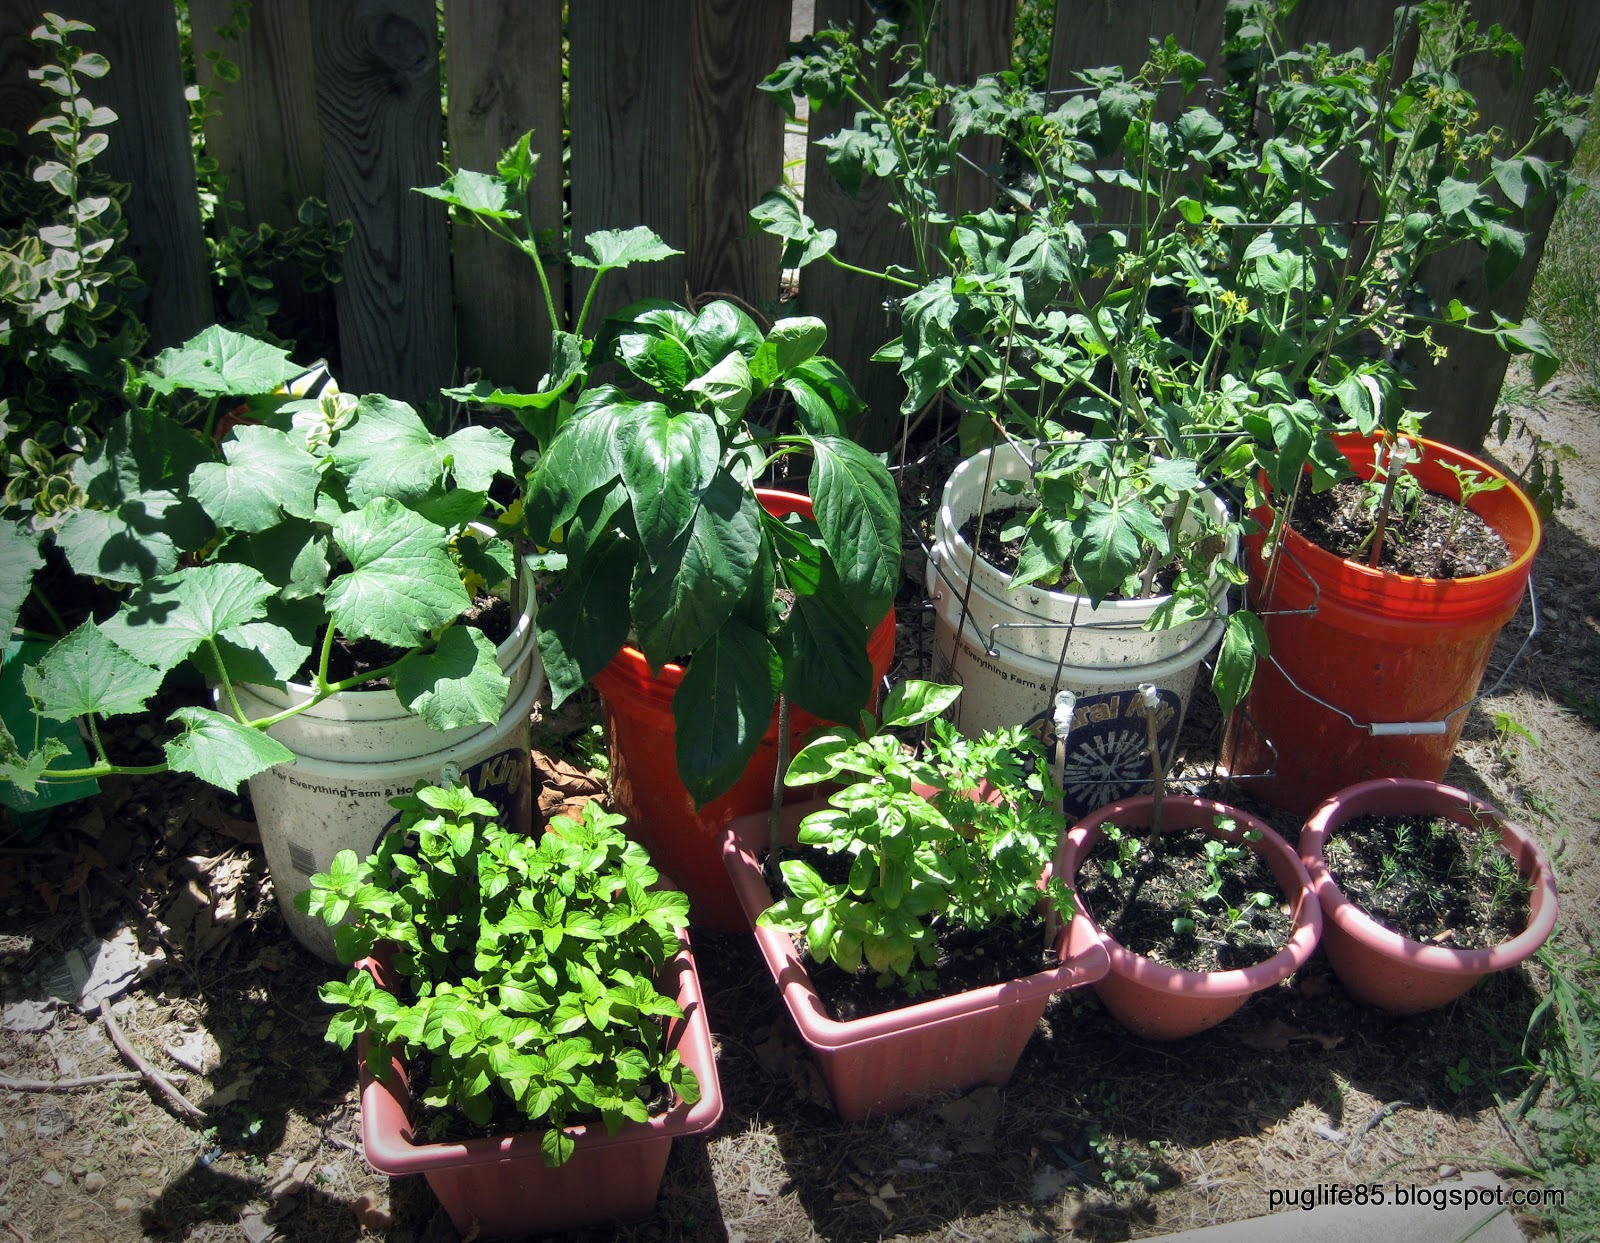 Diy container vegetable garden update this pug life for Diy vegetable garden